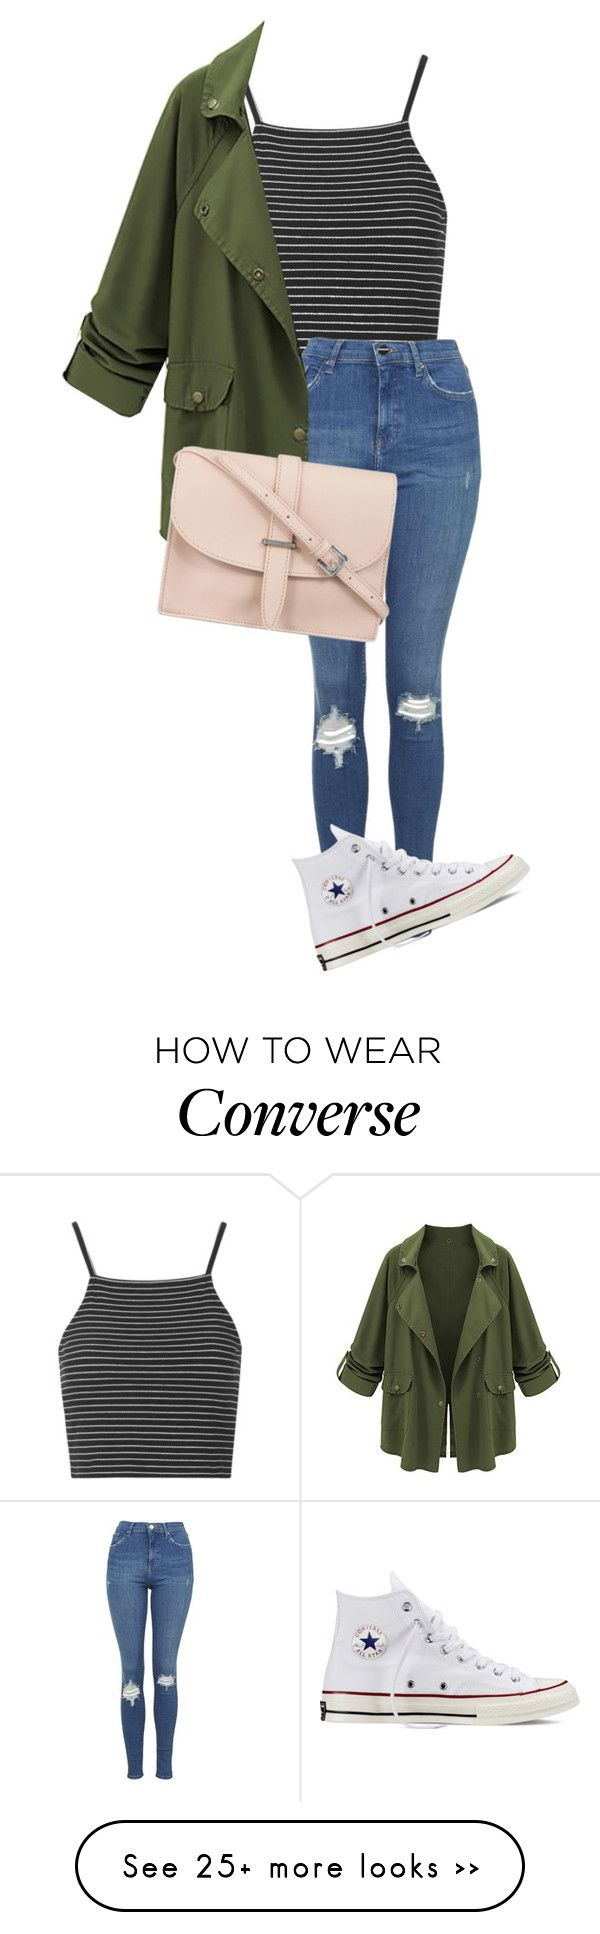 """""""Sin título #166"""" by steff25 on Polyvore featuring Topshop, Converse and M.N.G"""